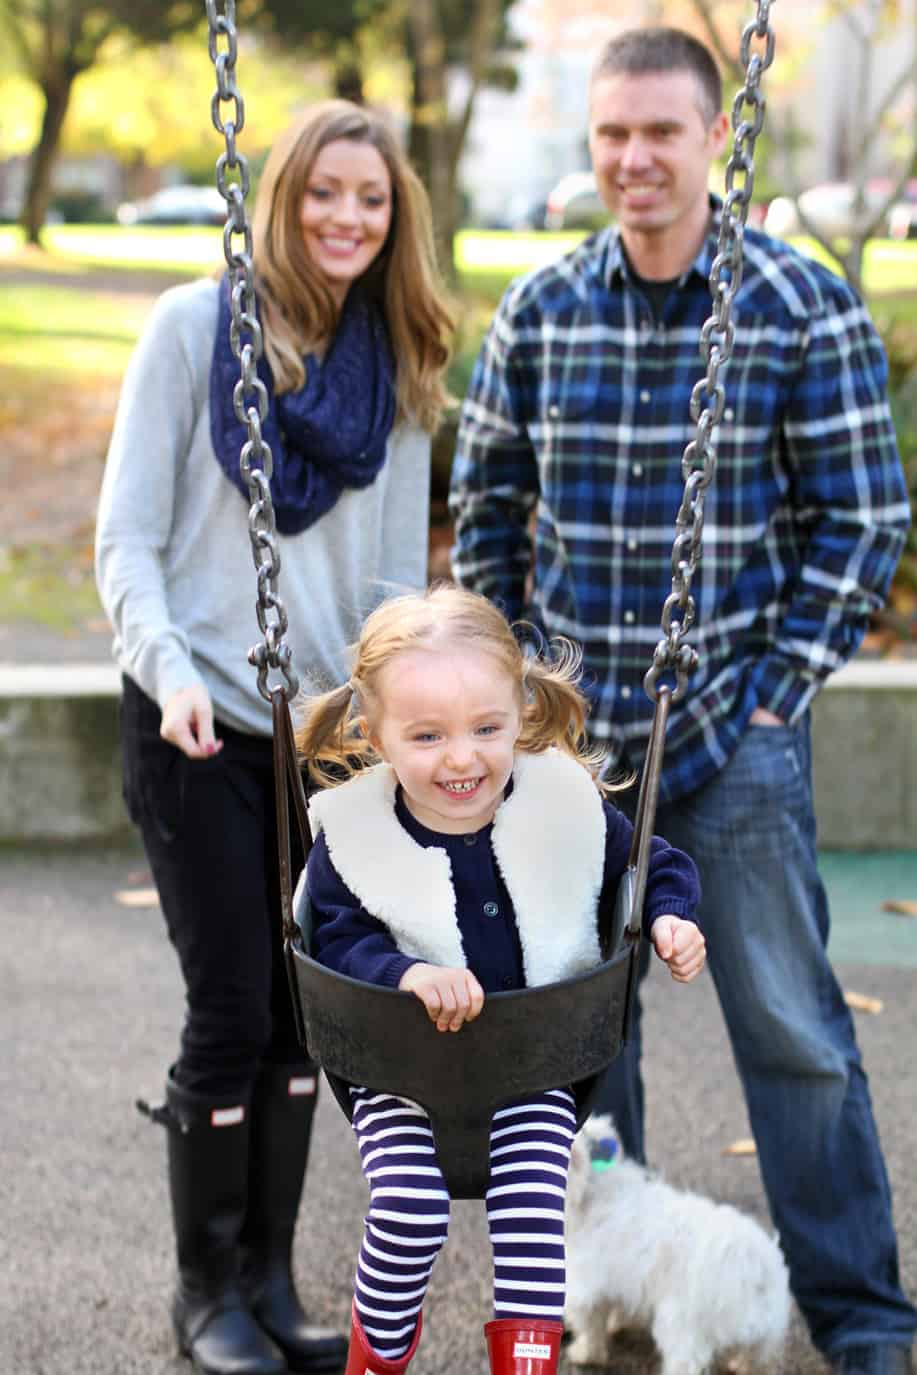 Wright Park Family Photo Shoot